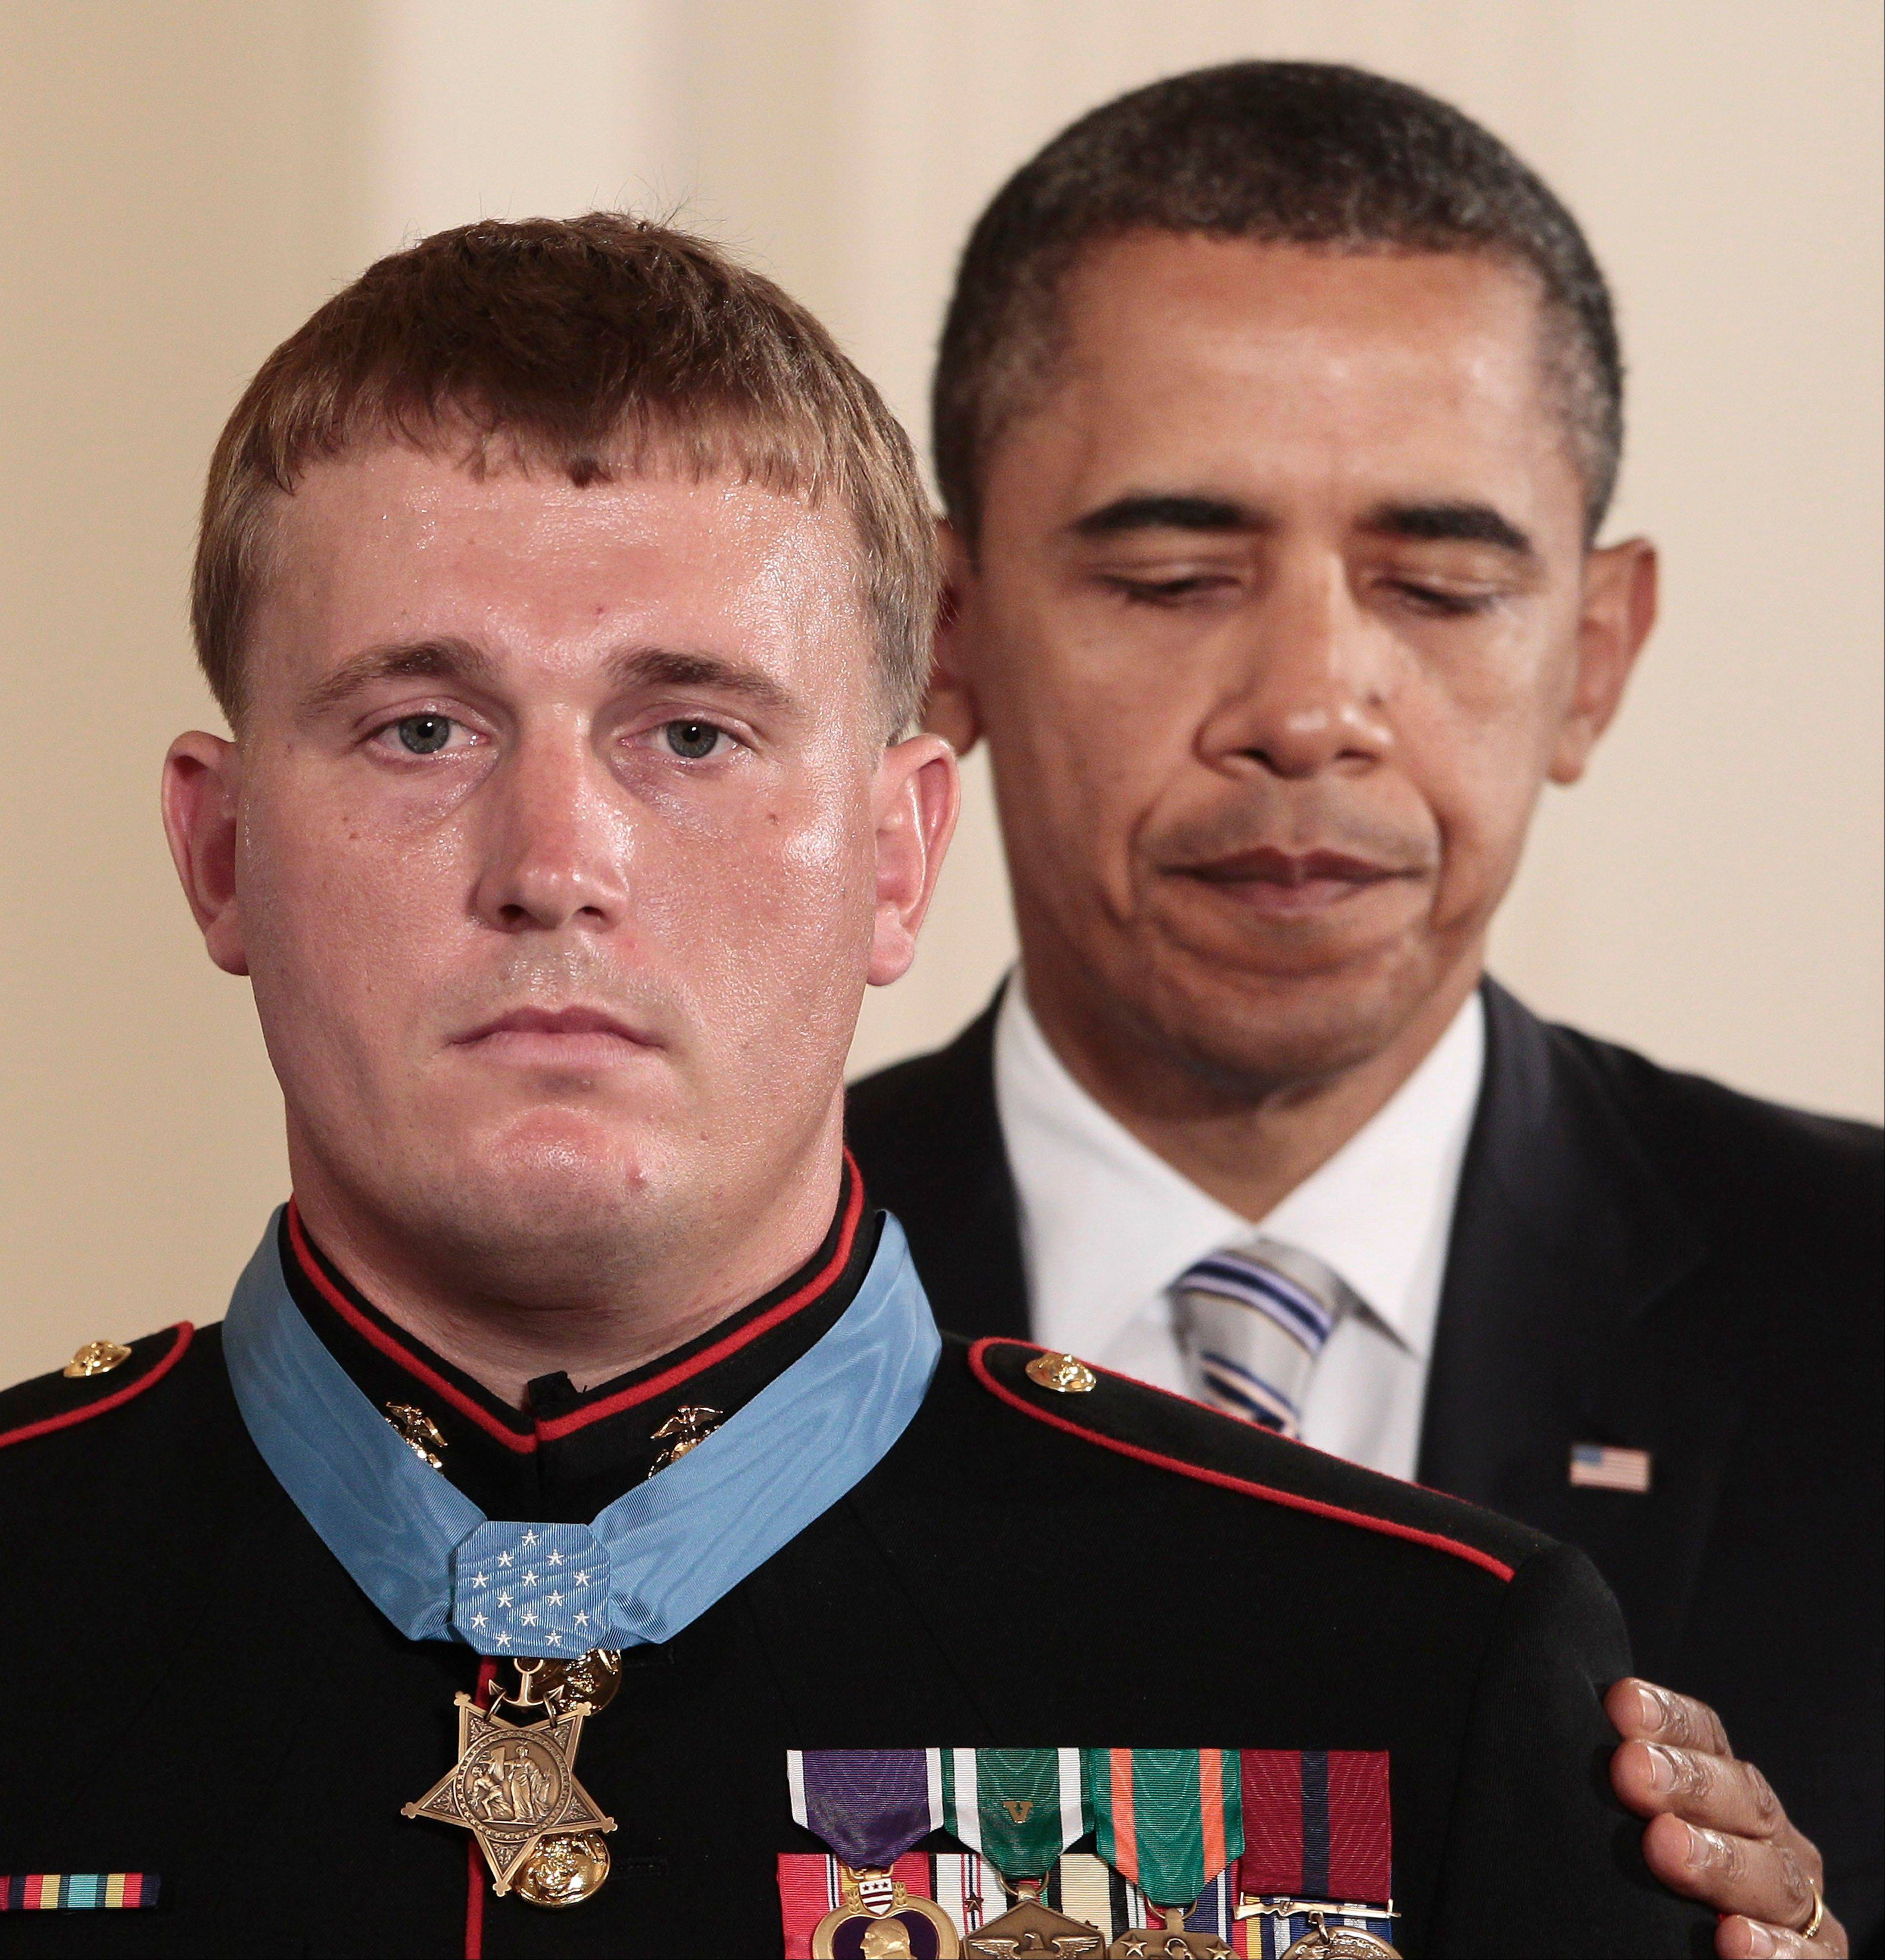 President Barack Obama awards the Medal of Honor on Thursday to former Marine Corps Cpl. Dakota Meyers, 23, from Greensburg, Ky., during a ceremony in the East Room of the White House in Washington.